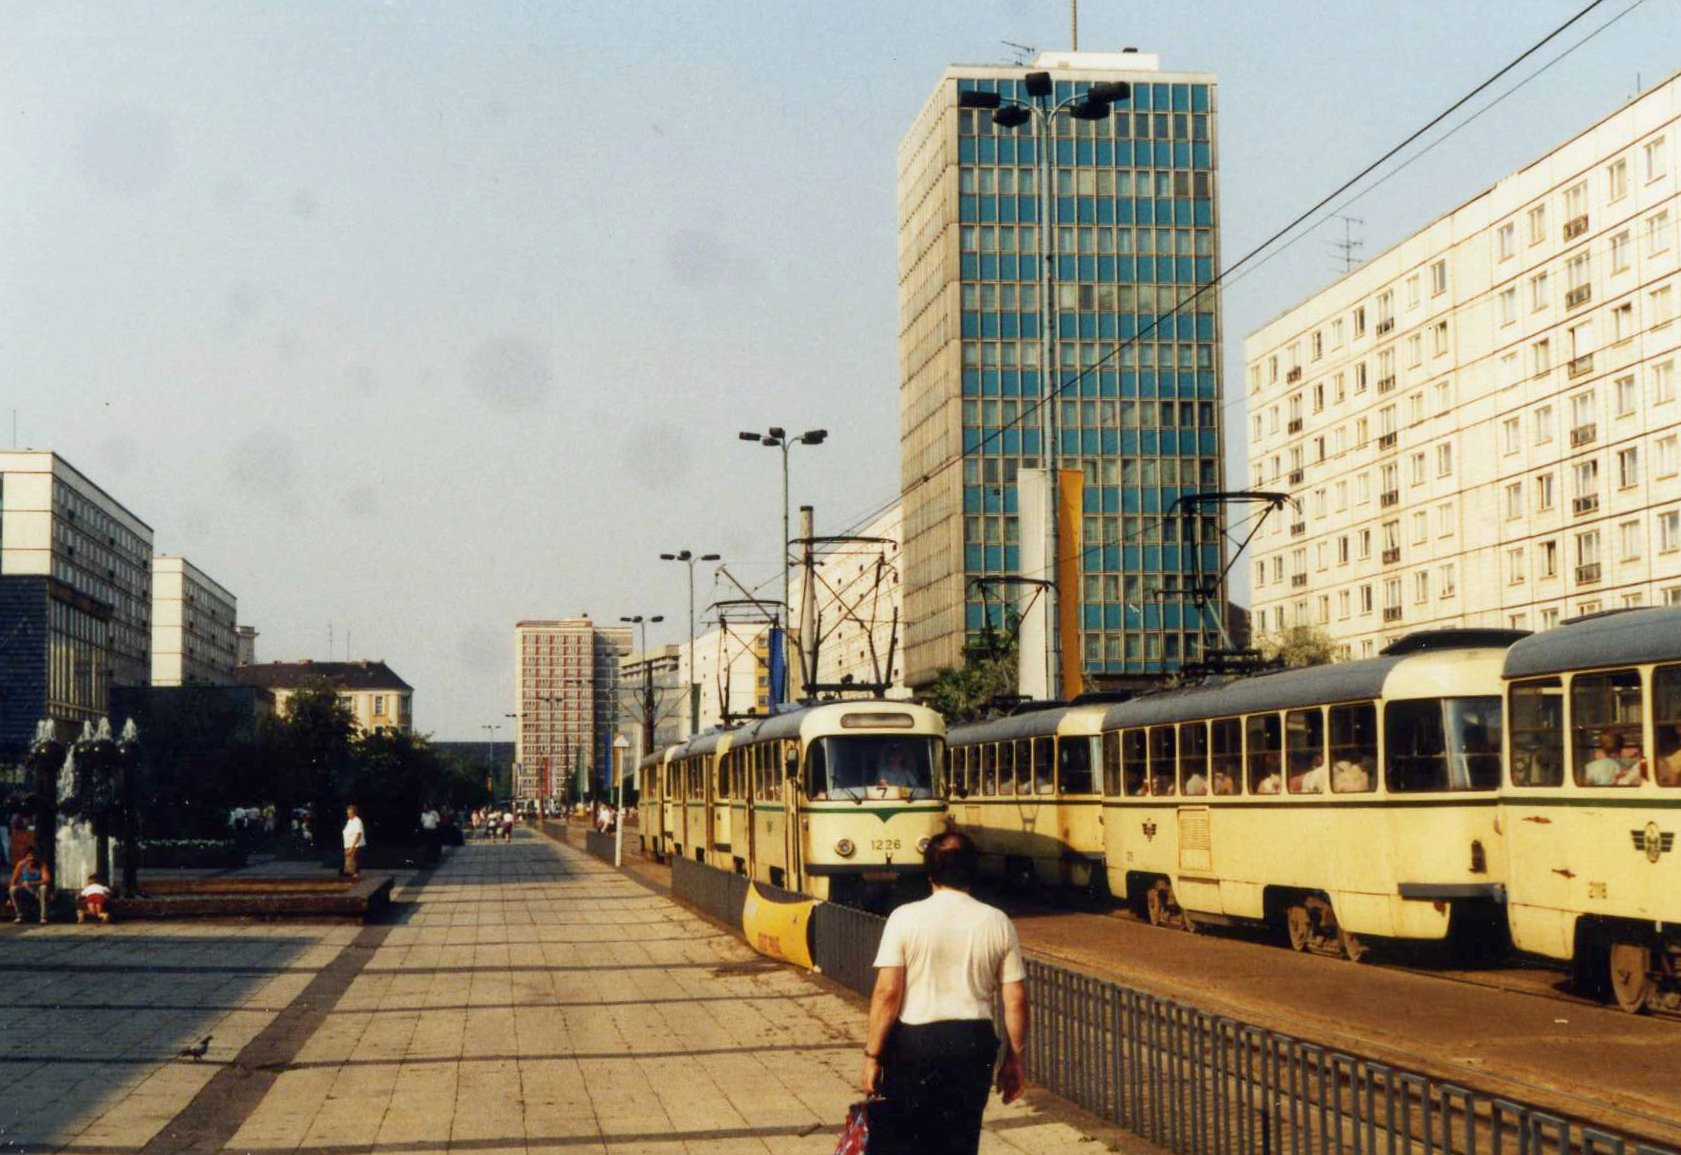 file karl marx str with haus des lehrers magdeburg and tatra t4d and b4d trams aug 1988. Black Bedroom Furniture Sets. Home Design Ideas